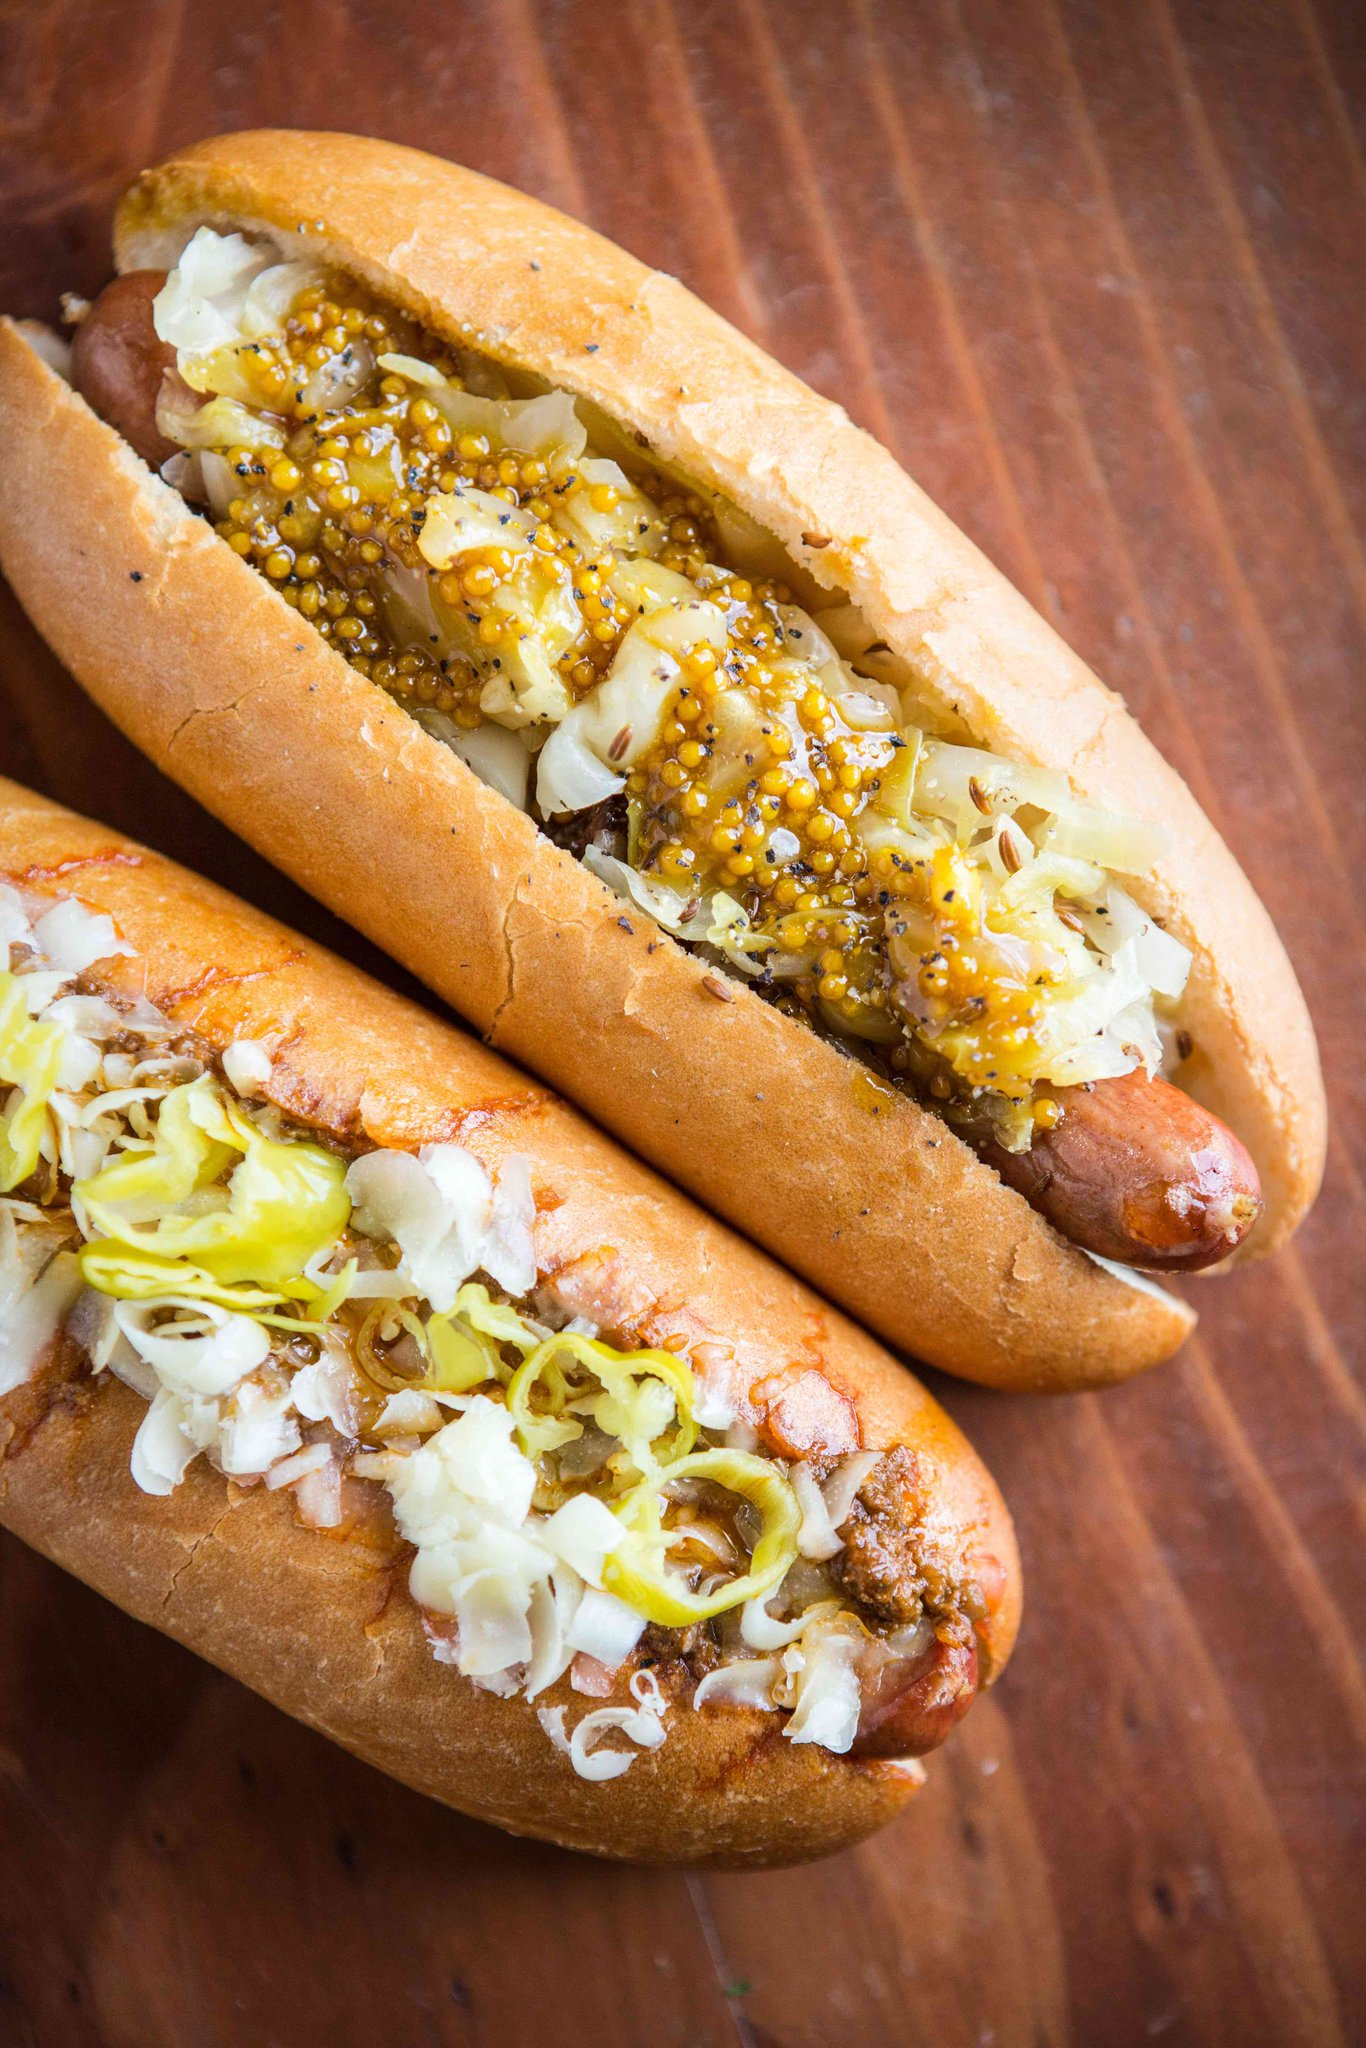 Gourmet hot dogs have hit Oakland's Jack London Square https://t.co/Vb1bk4ZpyK https://t.co/Vqqjc2RmCo